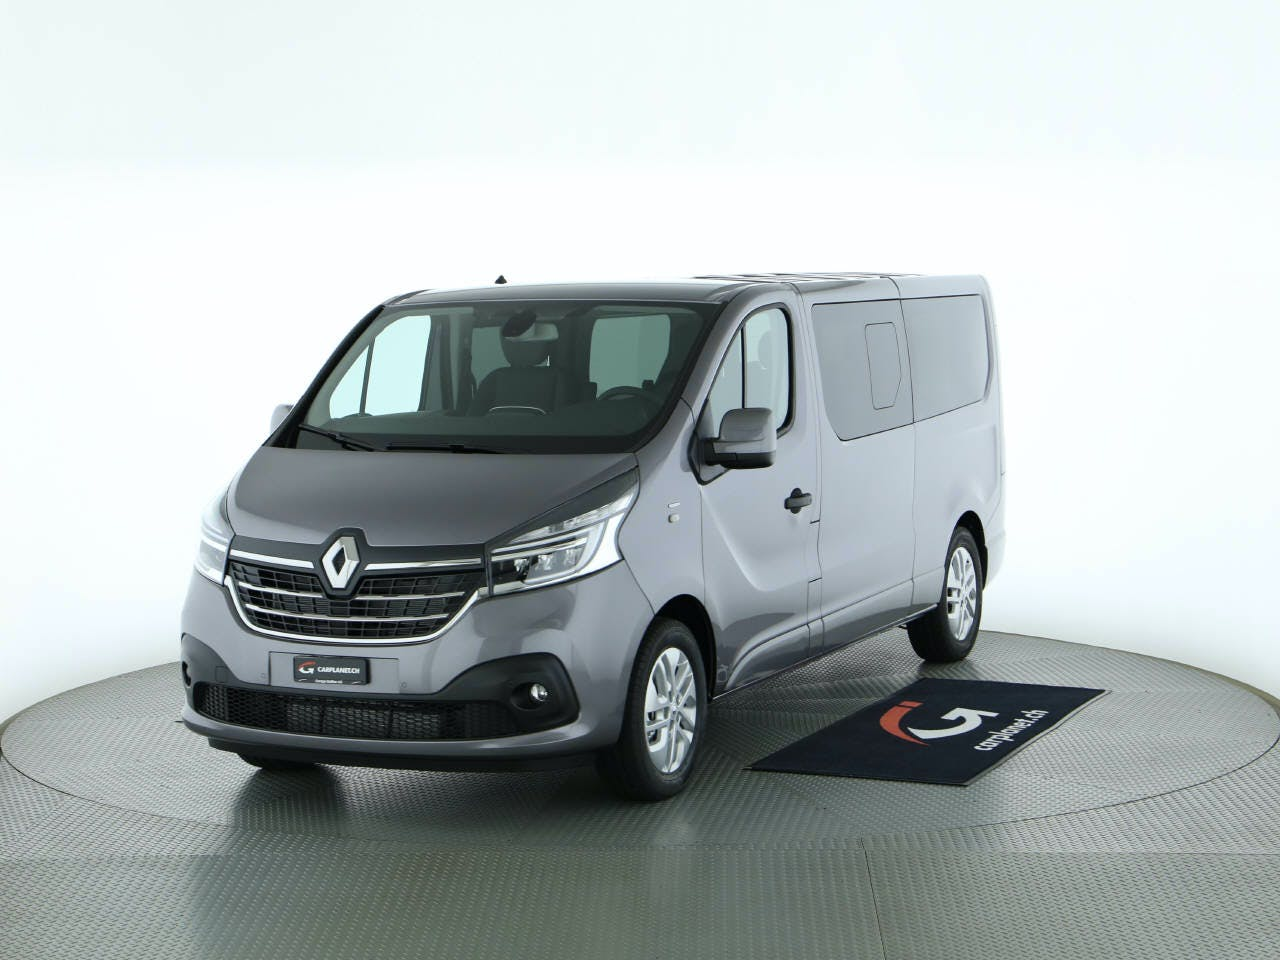 bus Renault Trafic Grand Spaceclass 2.0 dCi 170